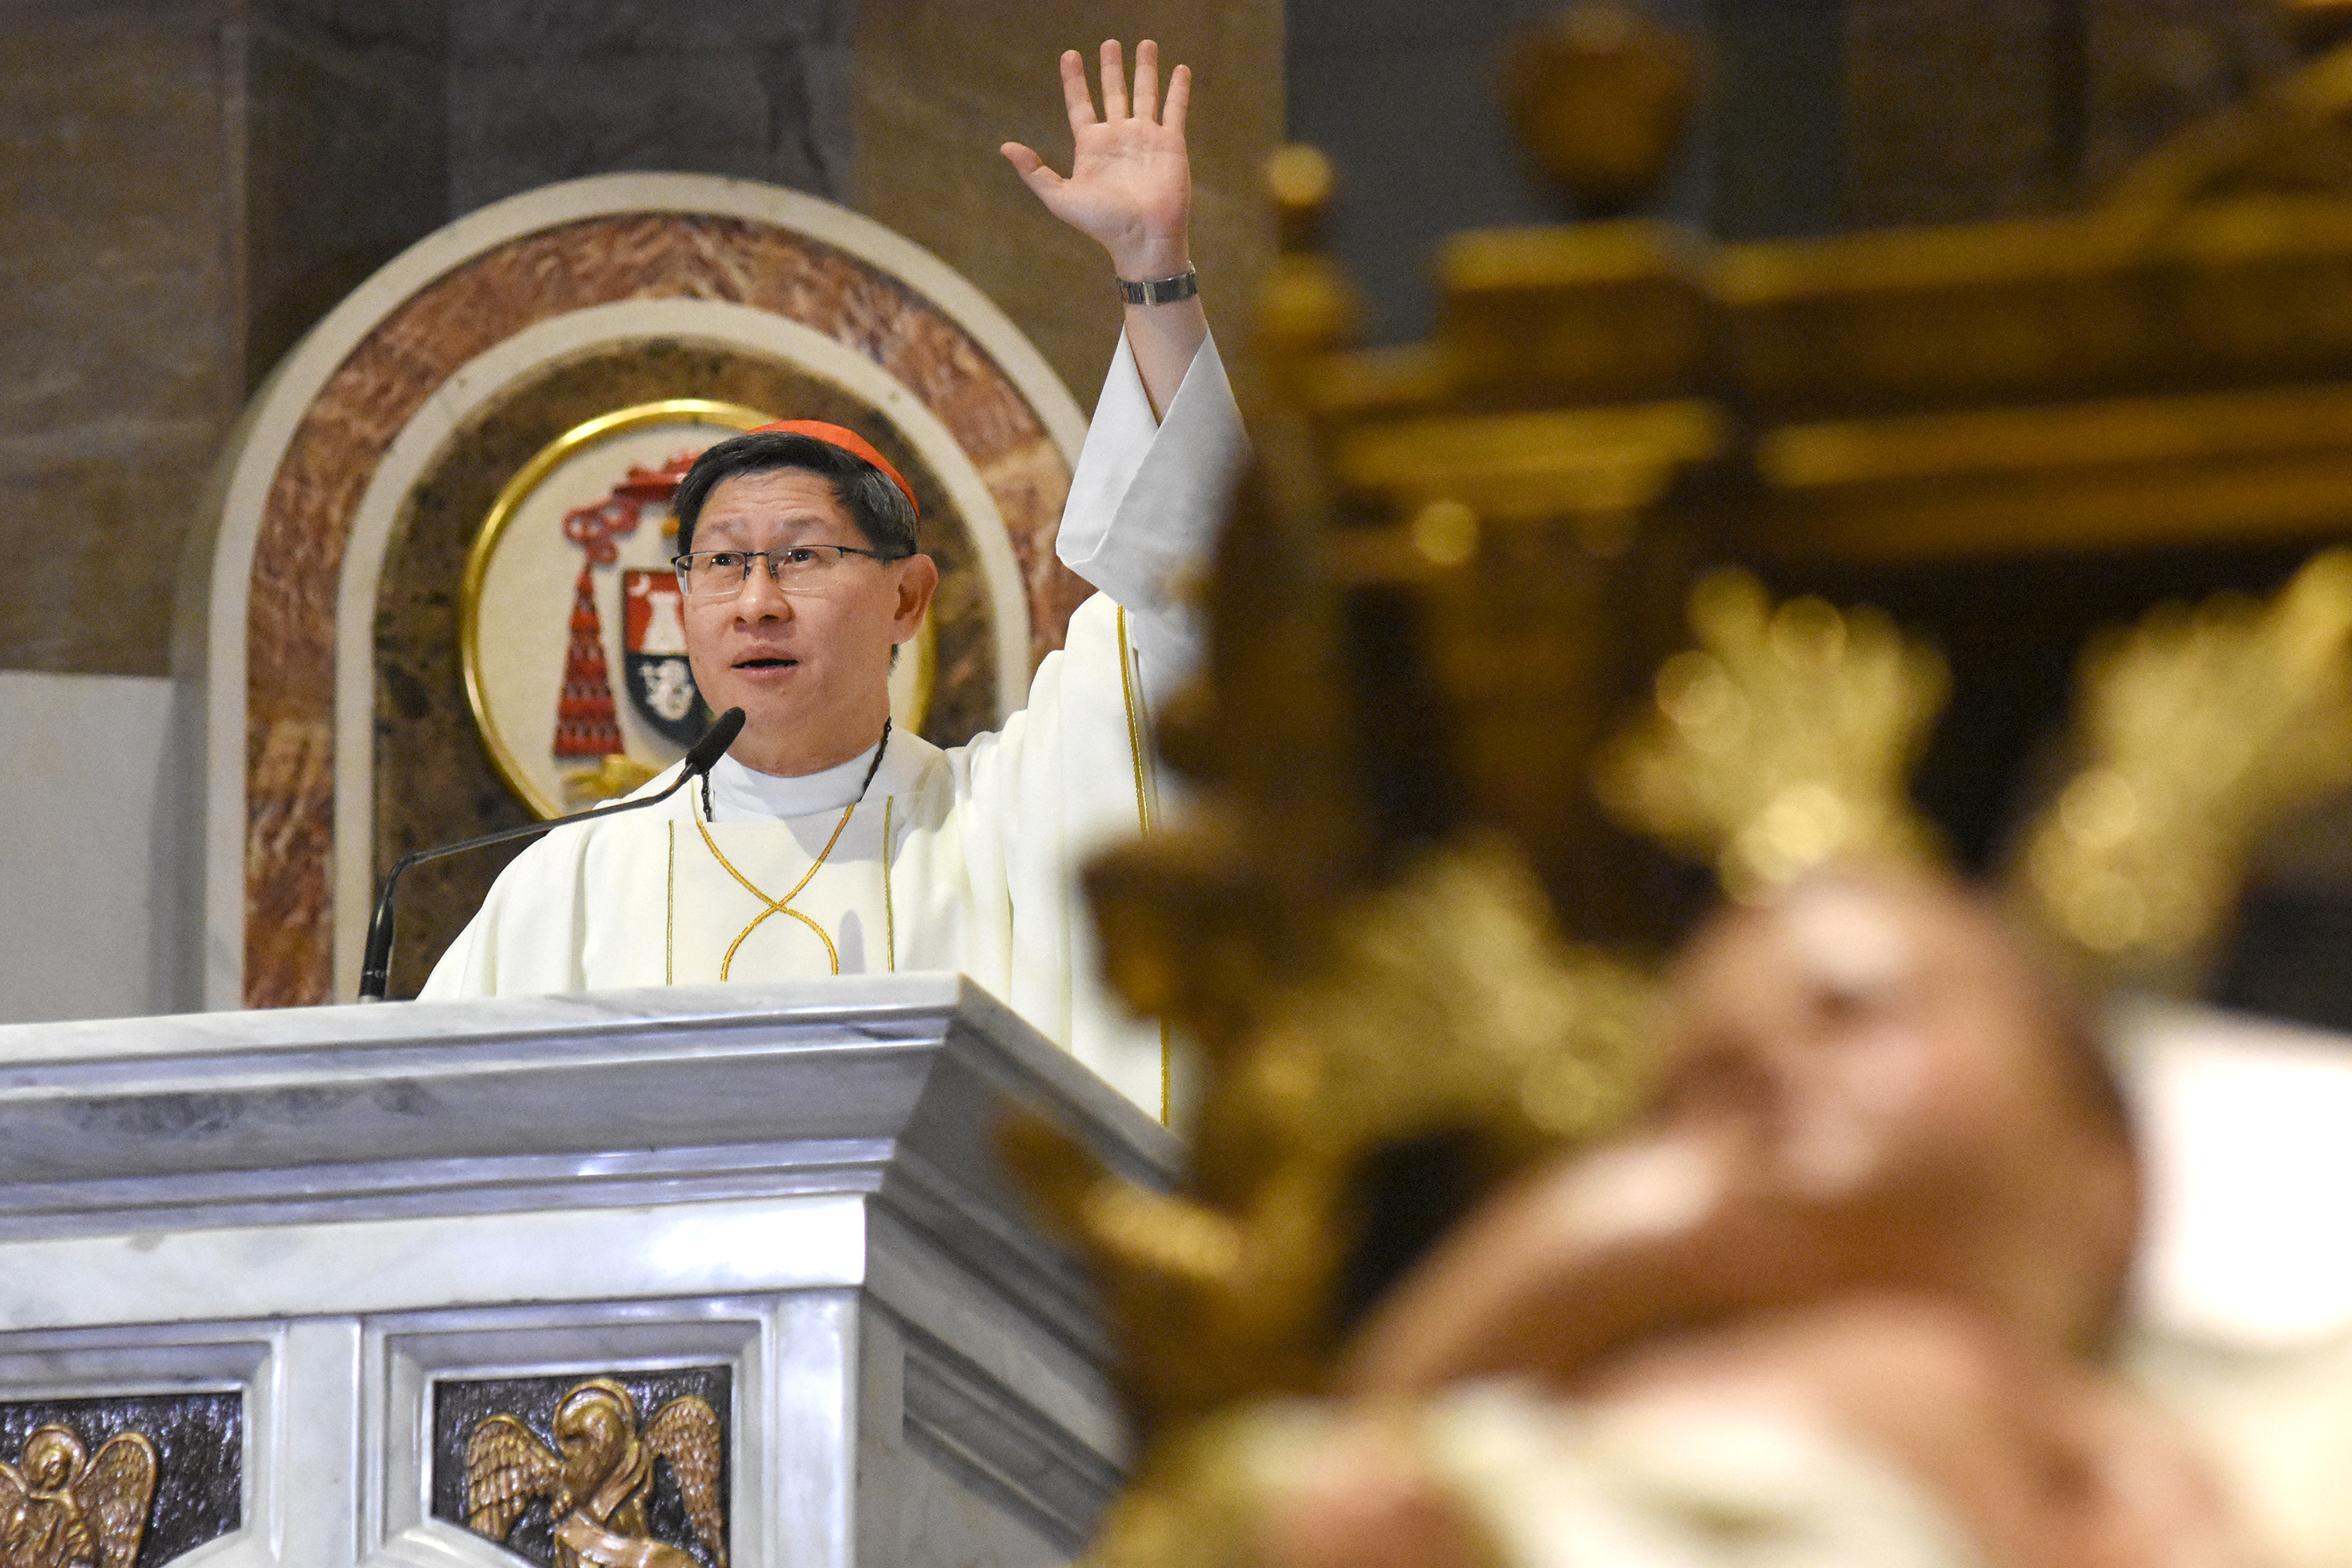 REMEMBER THE SUFFERING. Manila Archbishop Luis Antonio Cardinal Tagle urges Filipinos to remember the poor and suffering as he leads the Christmas Eve Mass at the Manila Cathedral on December 24, 2017. Photo by Angie de Silva/Rappler